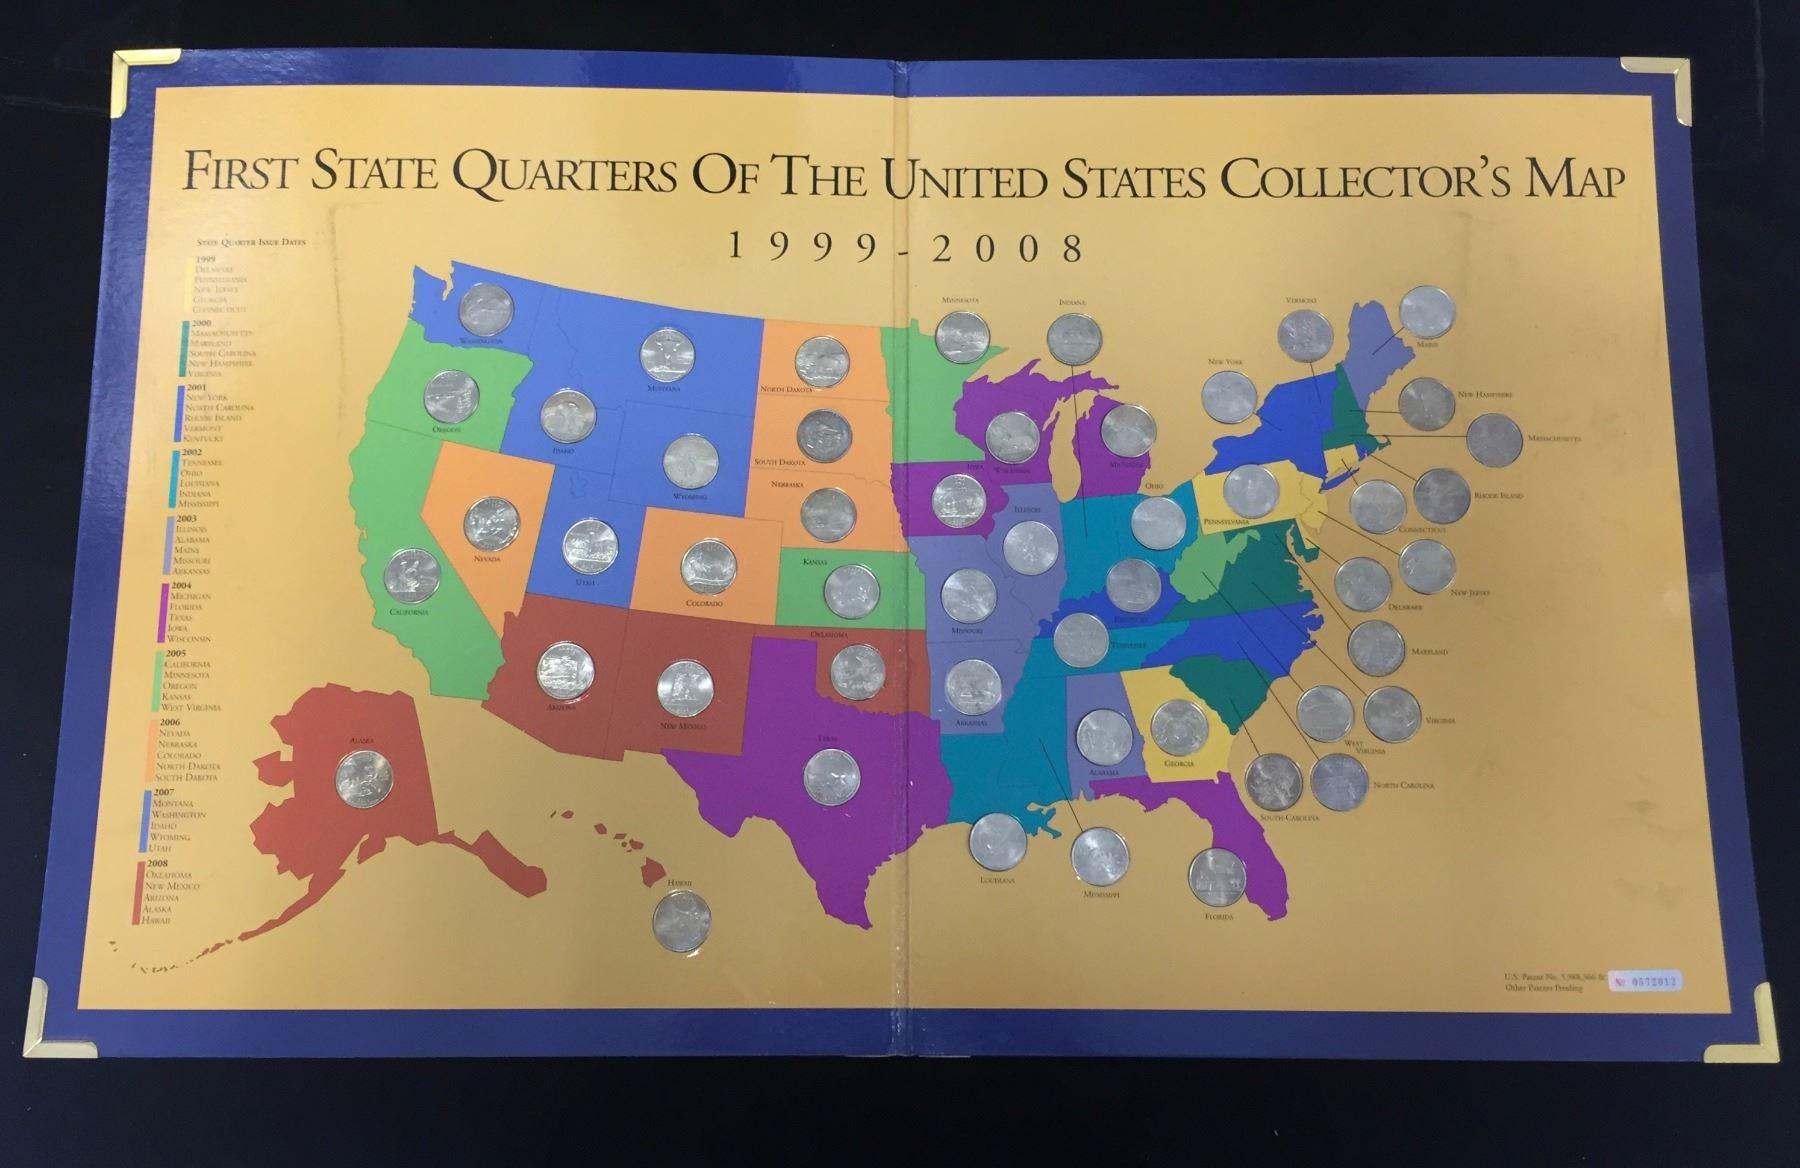 First State Quarters Of the United States Collector's Map on